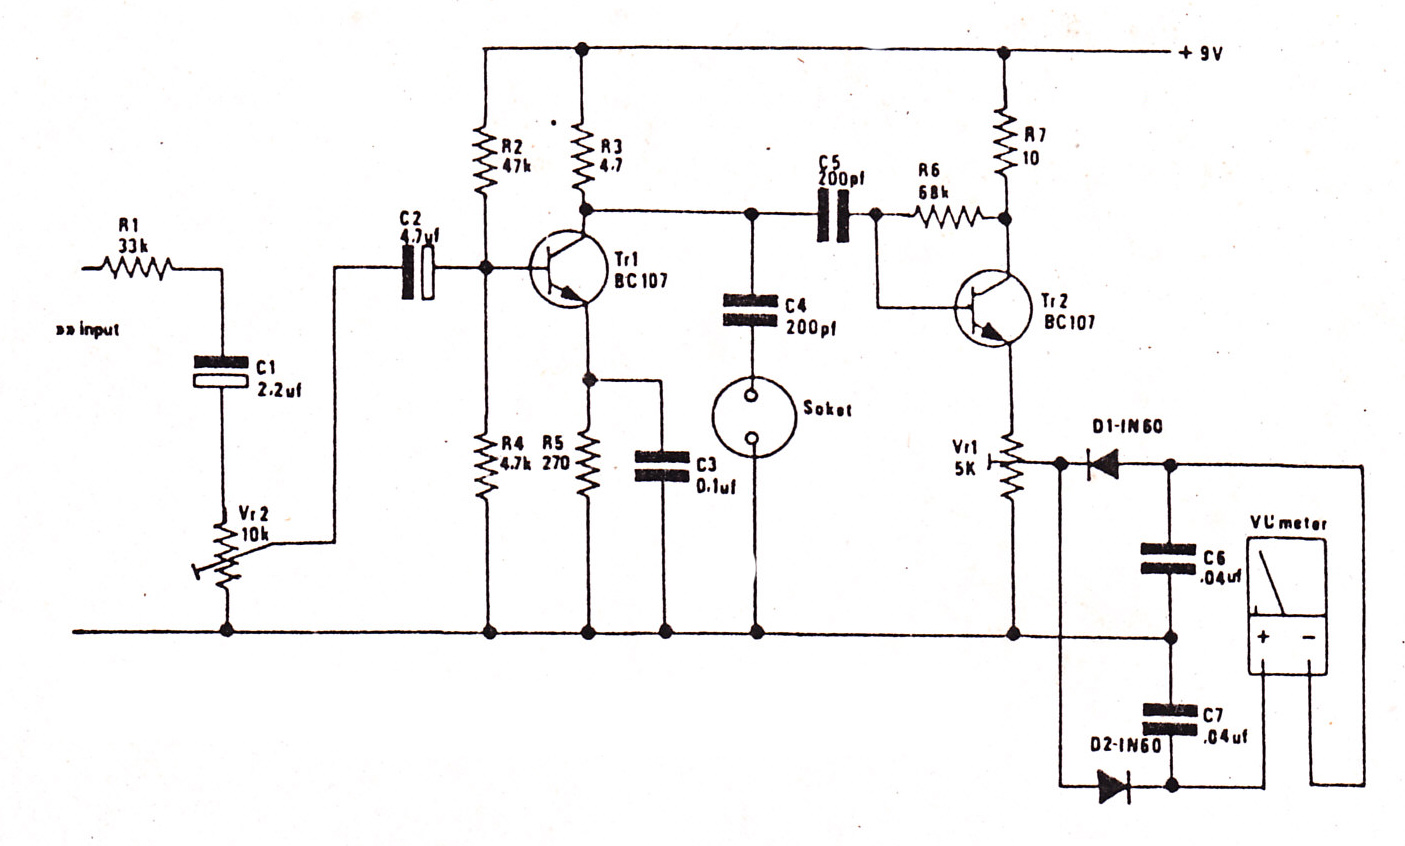 Circuit Diagram Led Vu Meter